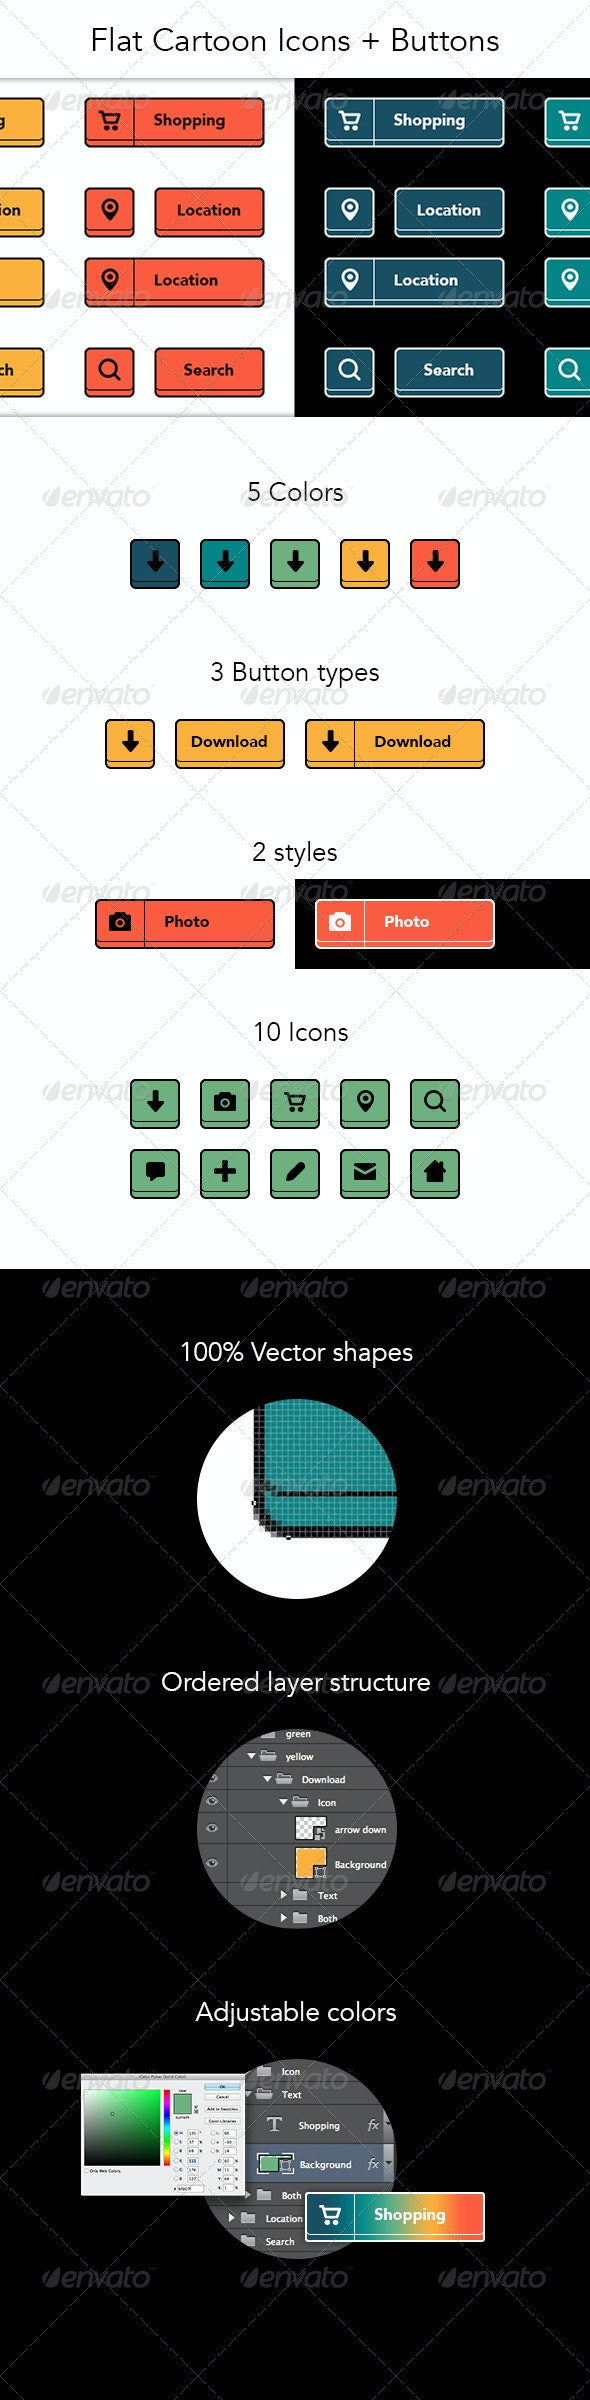 Flat Cartoon Buttons + Icons - Buttons Web Elements